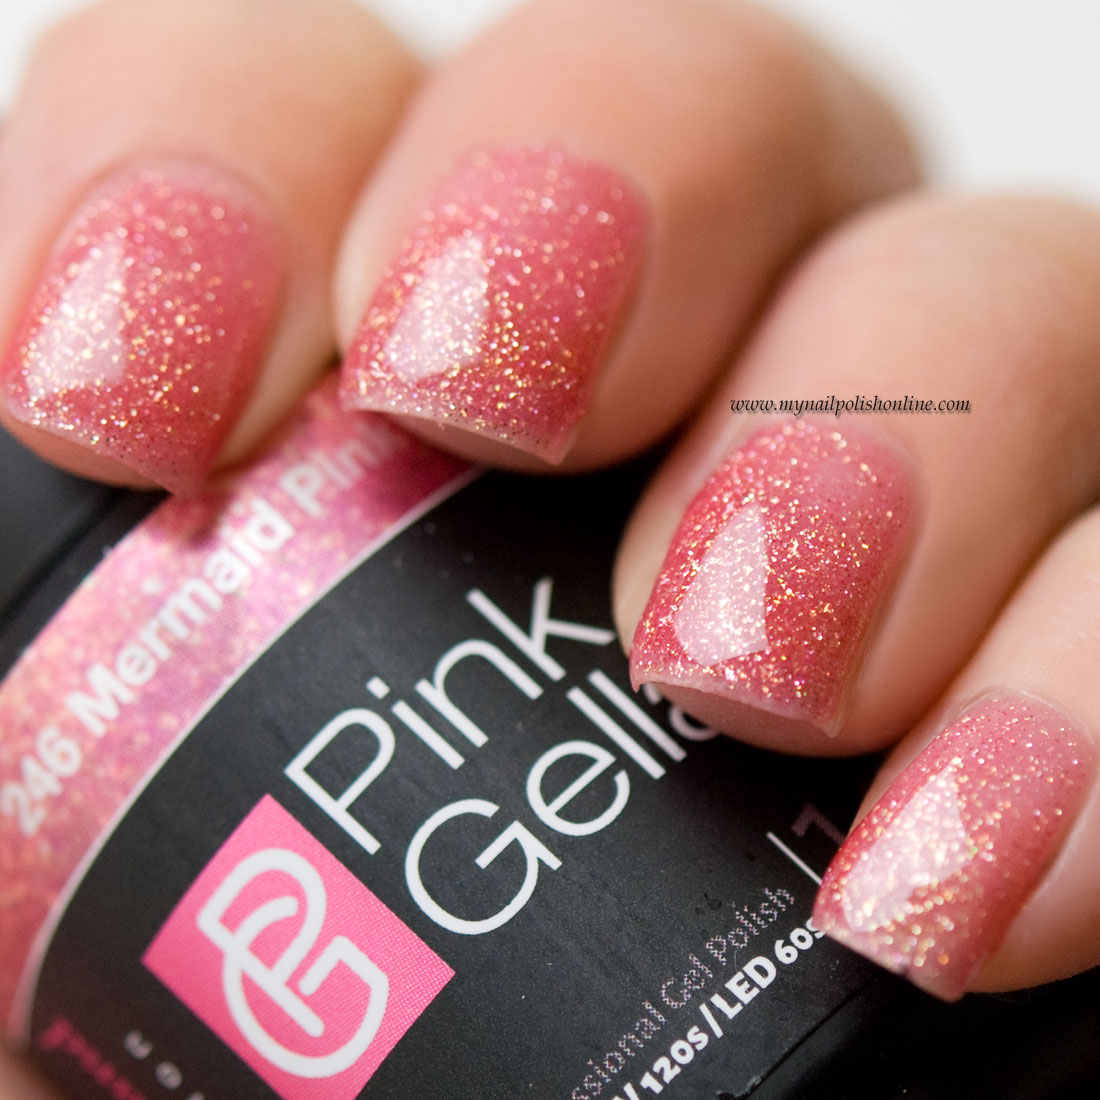 Pink Gellac Mermaid Pink